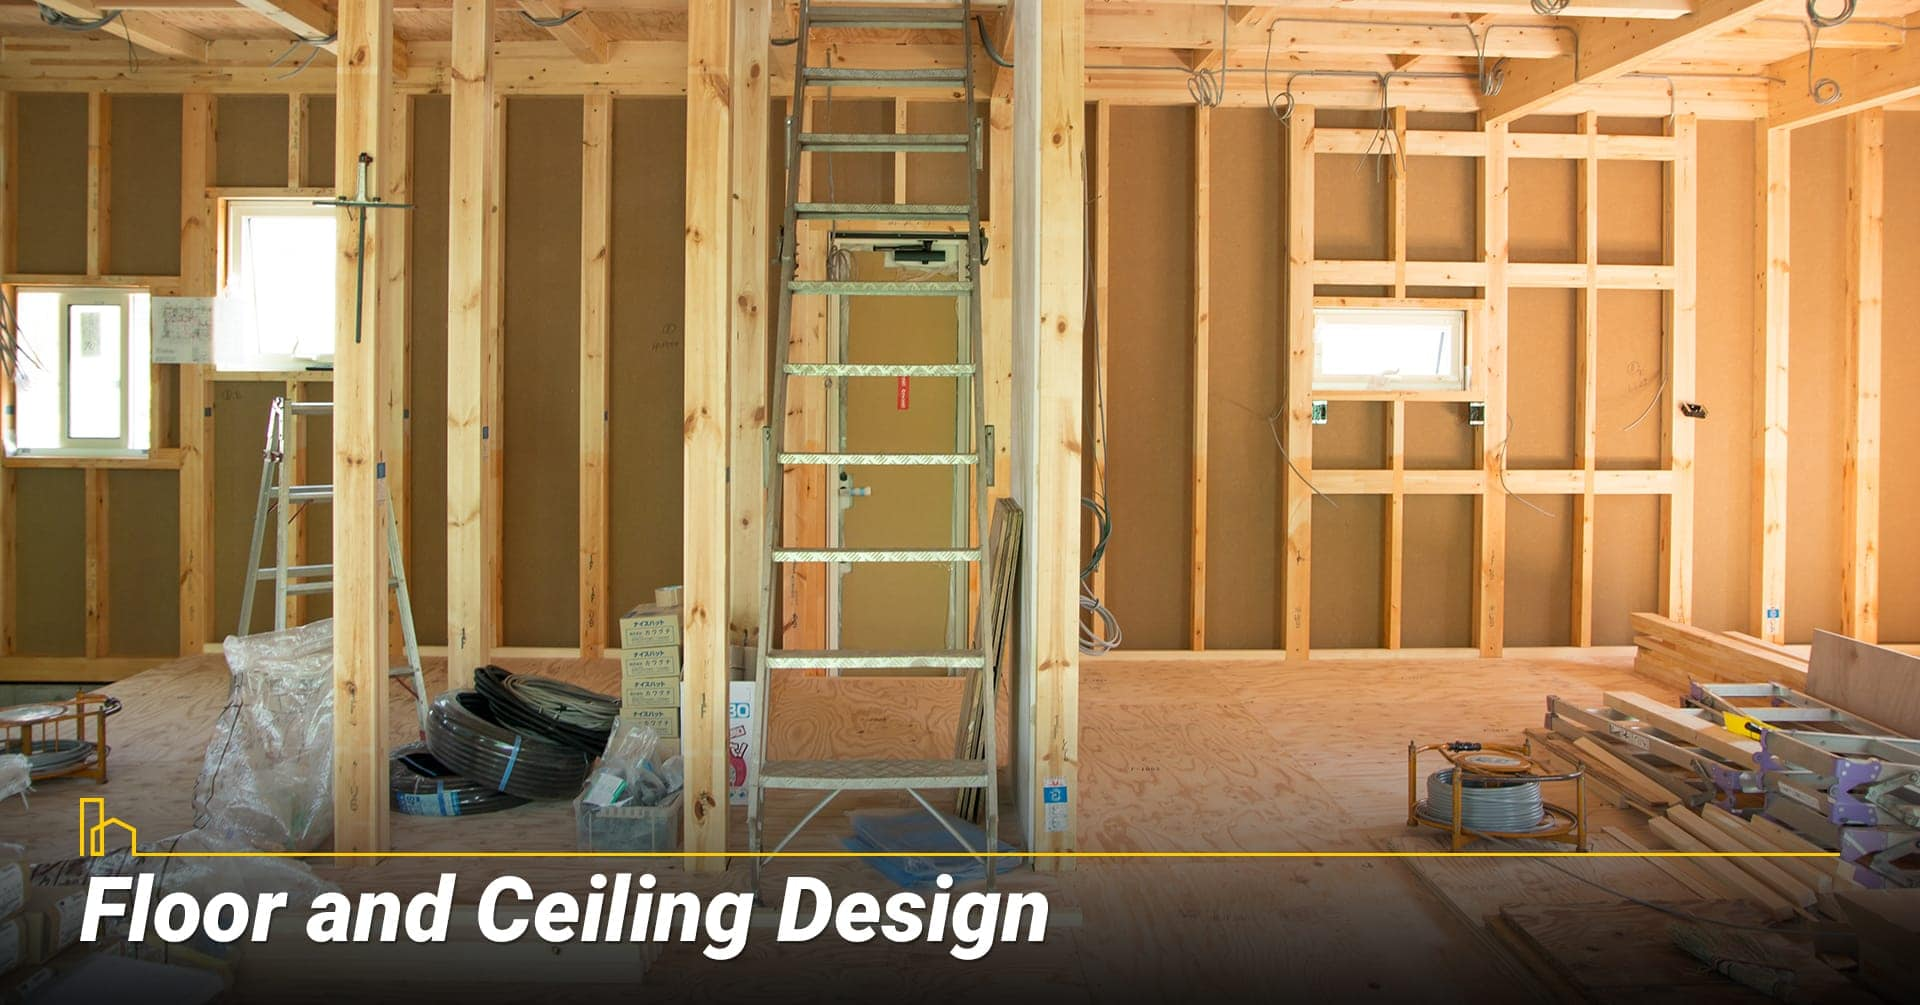 Floor and Ceiling Design, design your floor and ceiling